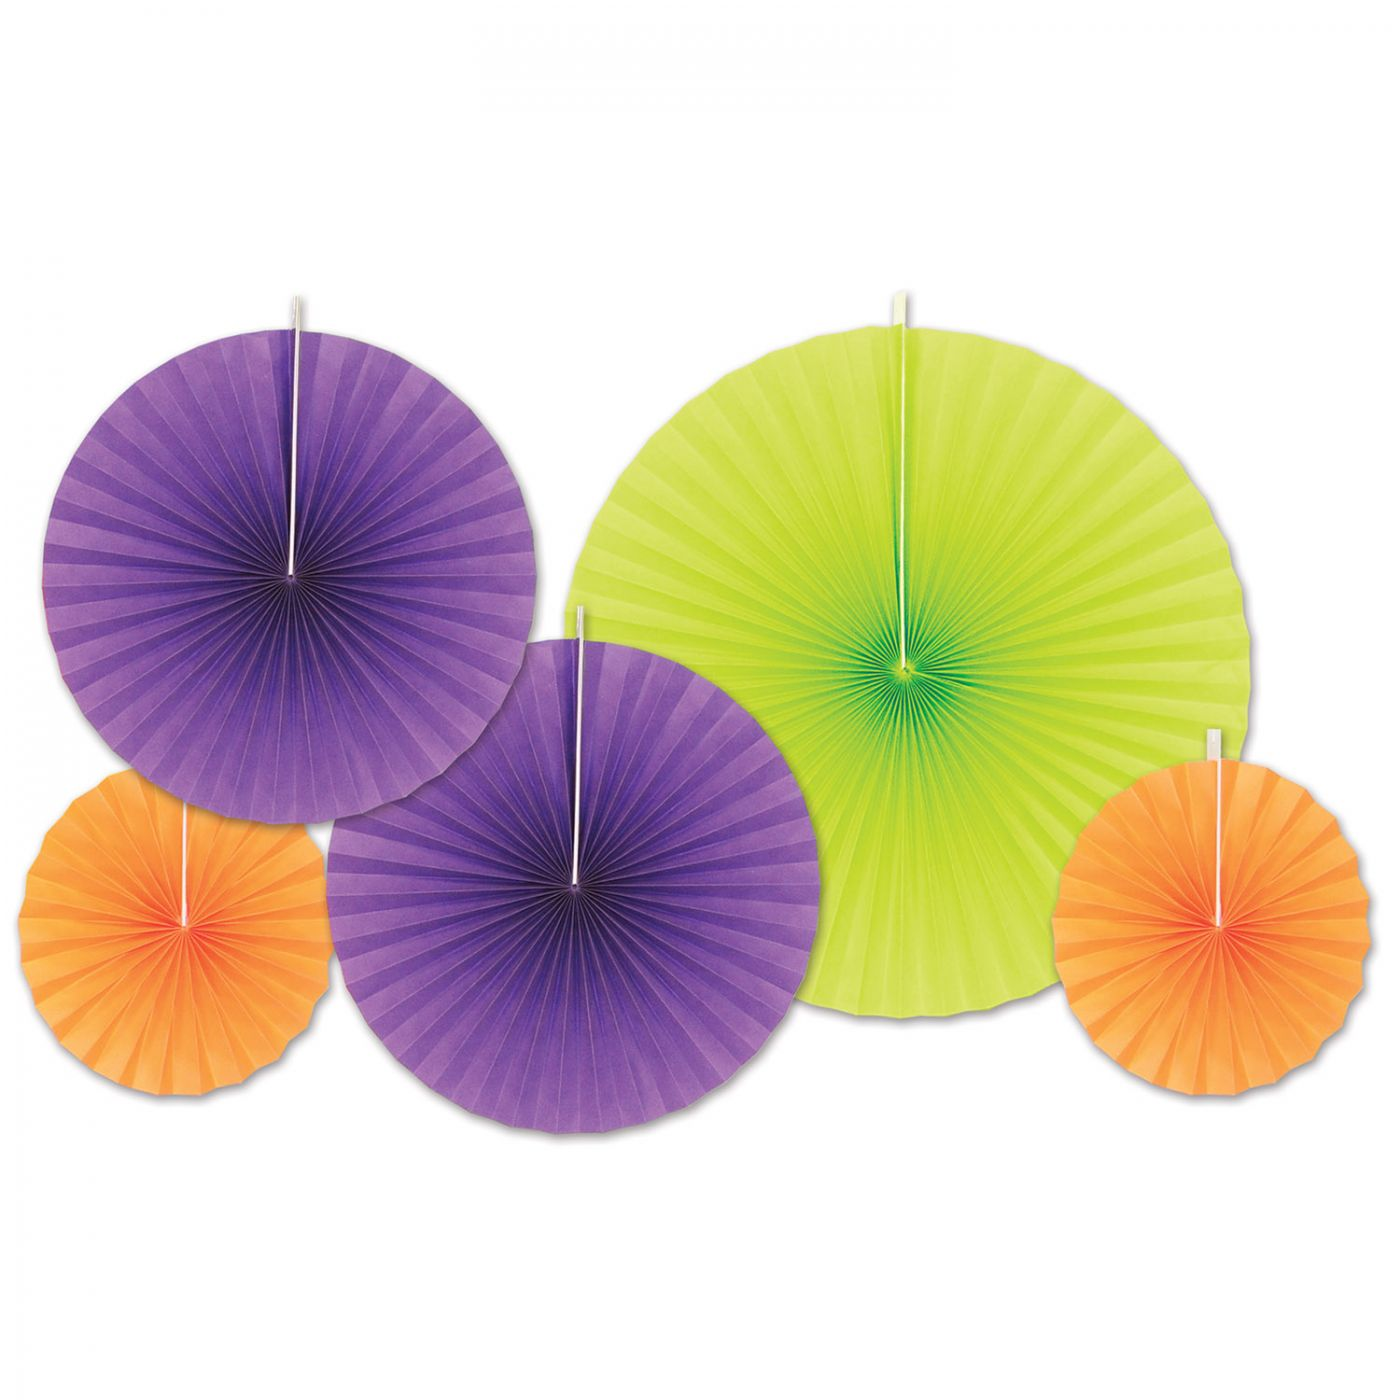 Image of Accordion Paper Fans